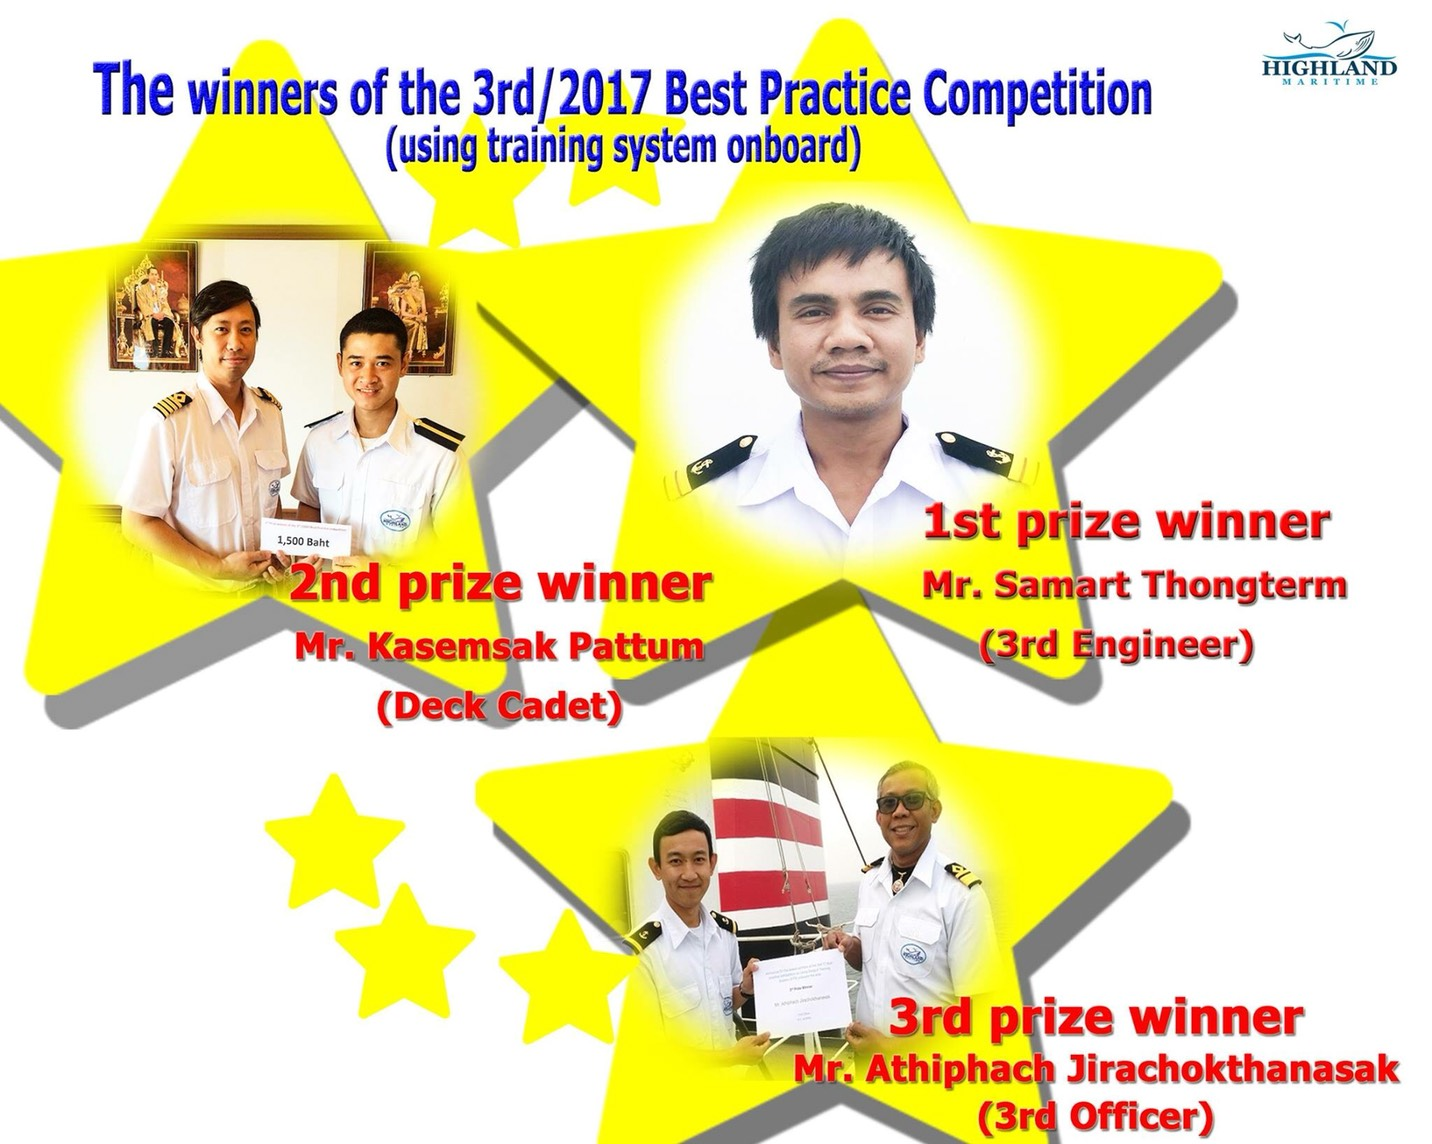 รางวัล The winners of the 3rd/2017 Best Practice Competition